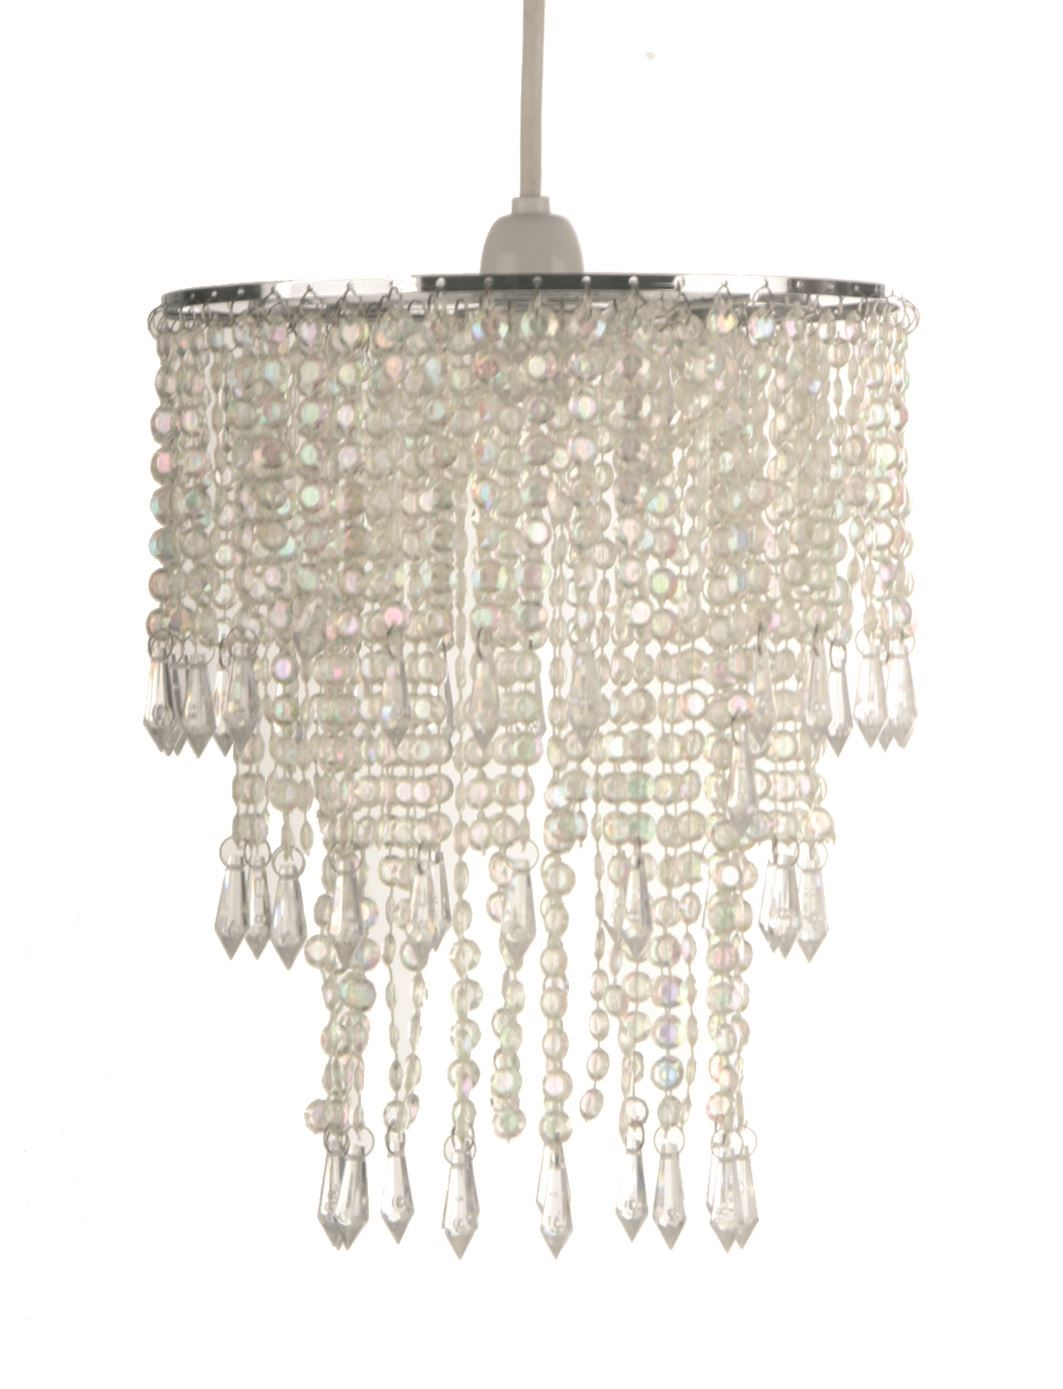 Easy Fit Vintage Chandelier Ceiling Light Lamp Shade